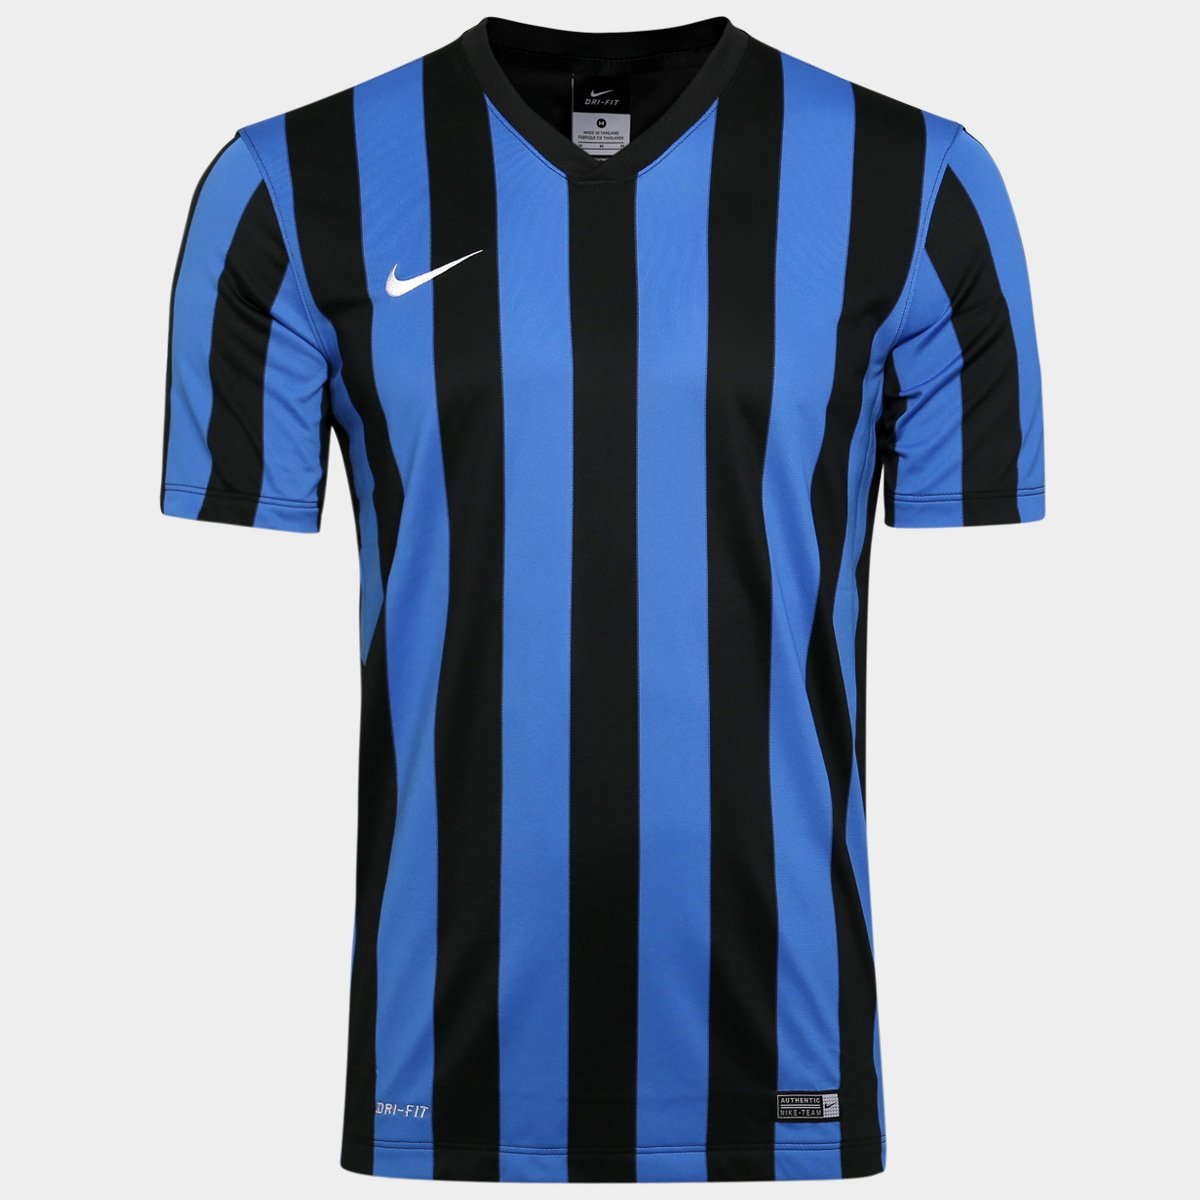 Camisa Nike Striped Division Jersey Masculina - Compre Agora  48ecf31ef3937